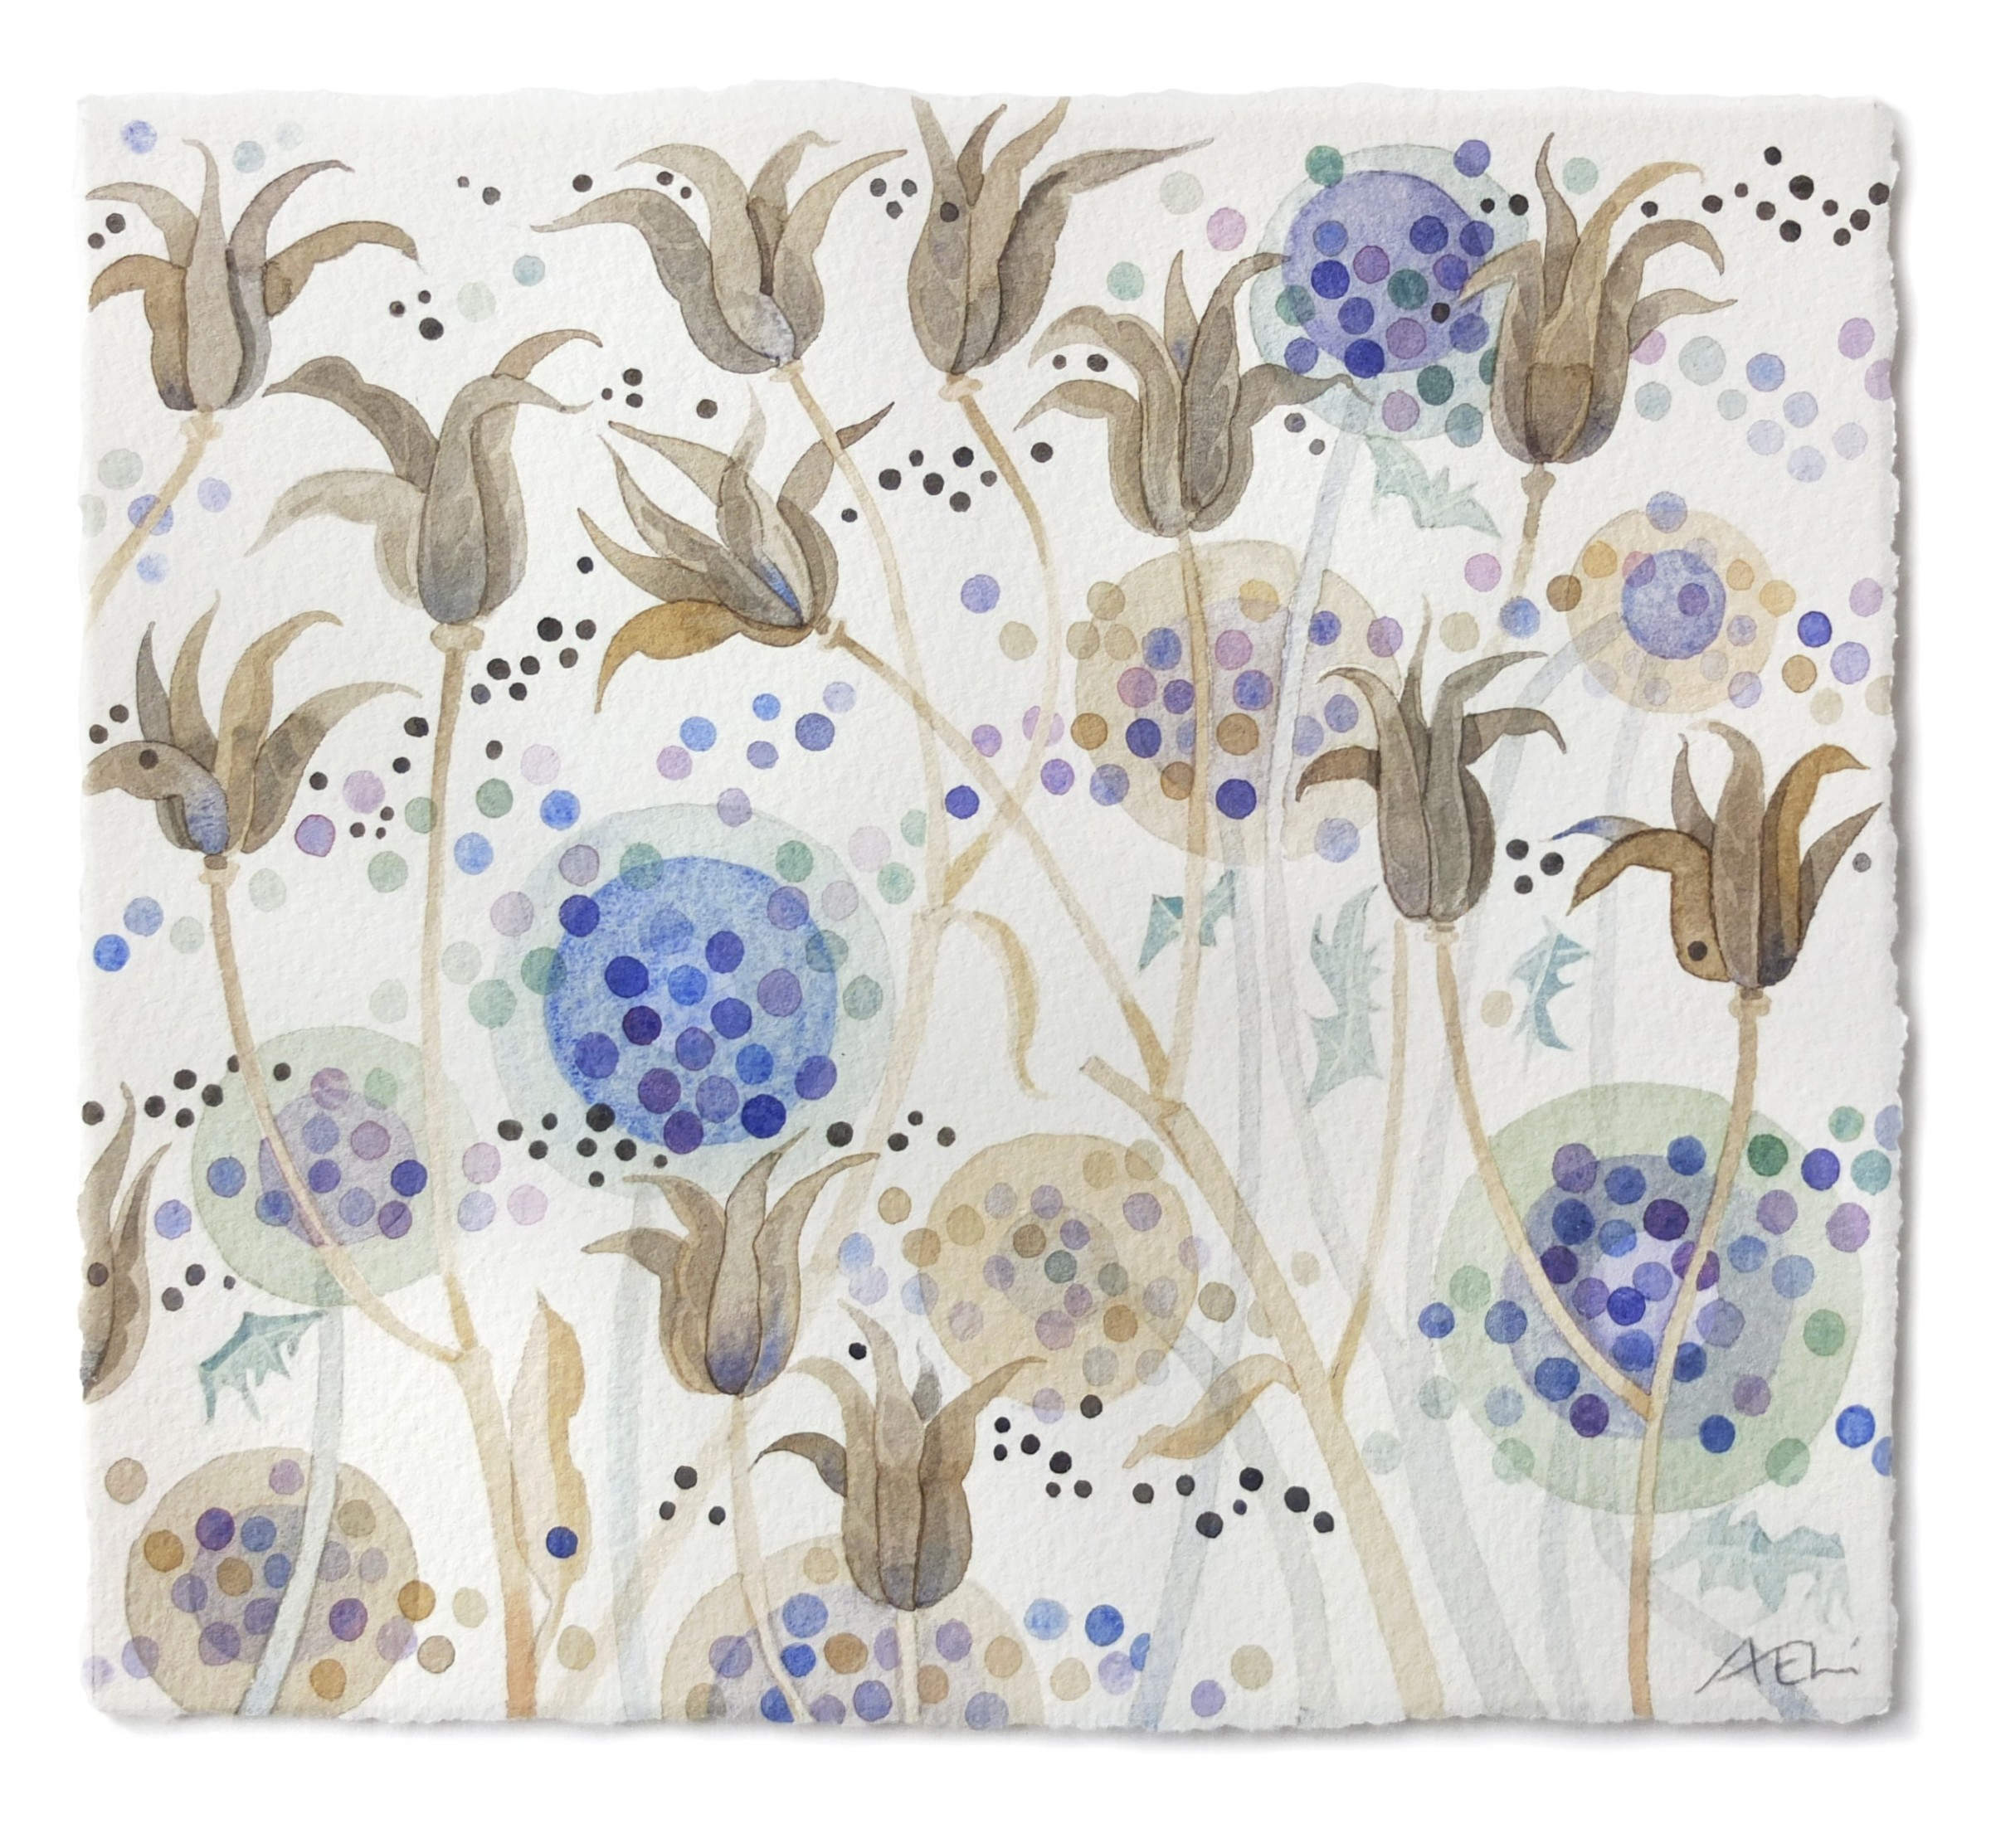 """<span class=""""link fancybox-details-link""""><a href=""""/artists/129-angie-lewin/works/12086-angie-lewin-echinops-and-aquilegia/"""">View Detail Page</a></span><div class=""""artist""""><span class=""""artist""""><strong>Angie Lewin</strong></span></div><div class=""""title""""><em>Echinops and Aquilegia</em></div><div class=""""medium"""">watercolour</div><div class=""""dimensions"""">Frame: 35.5 x 36 cm<br /> Artwork: 17.5 x 19 cm</div><div class=""""price"""">£485.00</div>"""